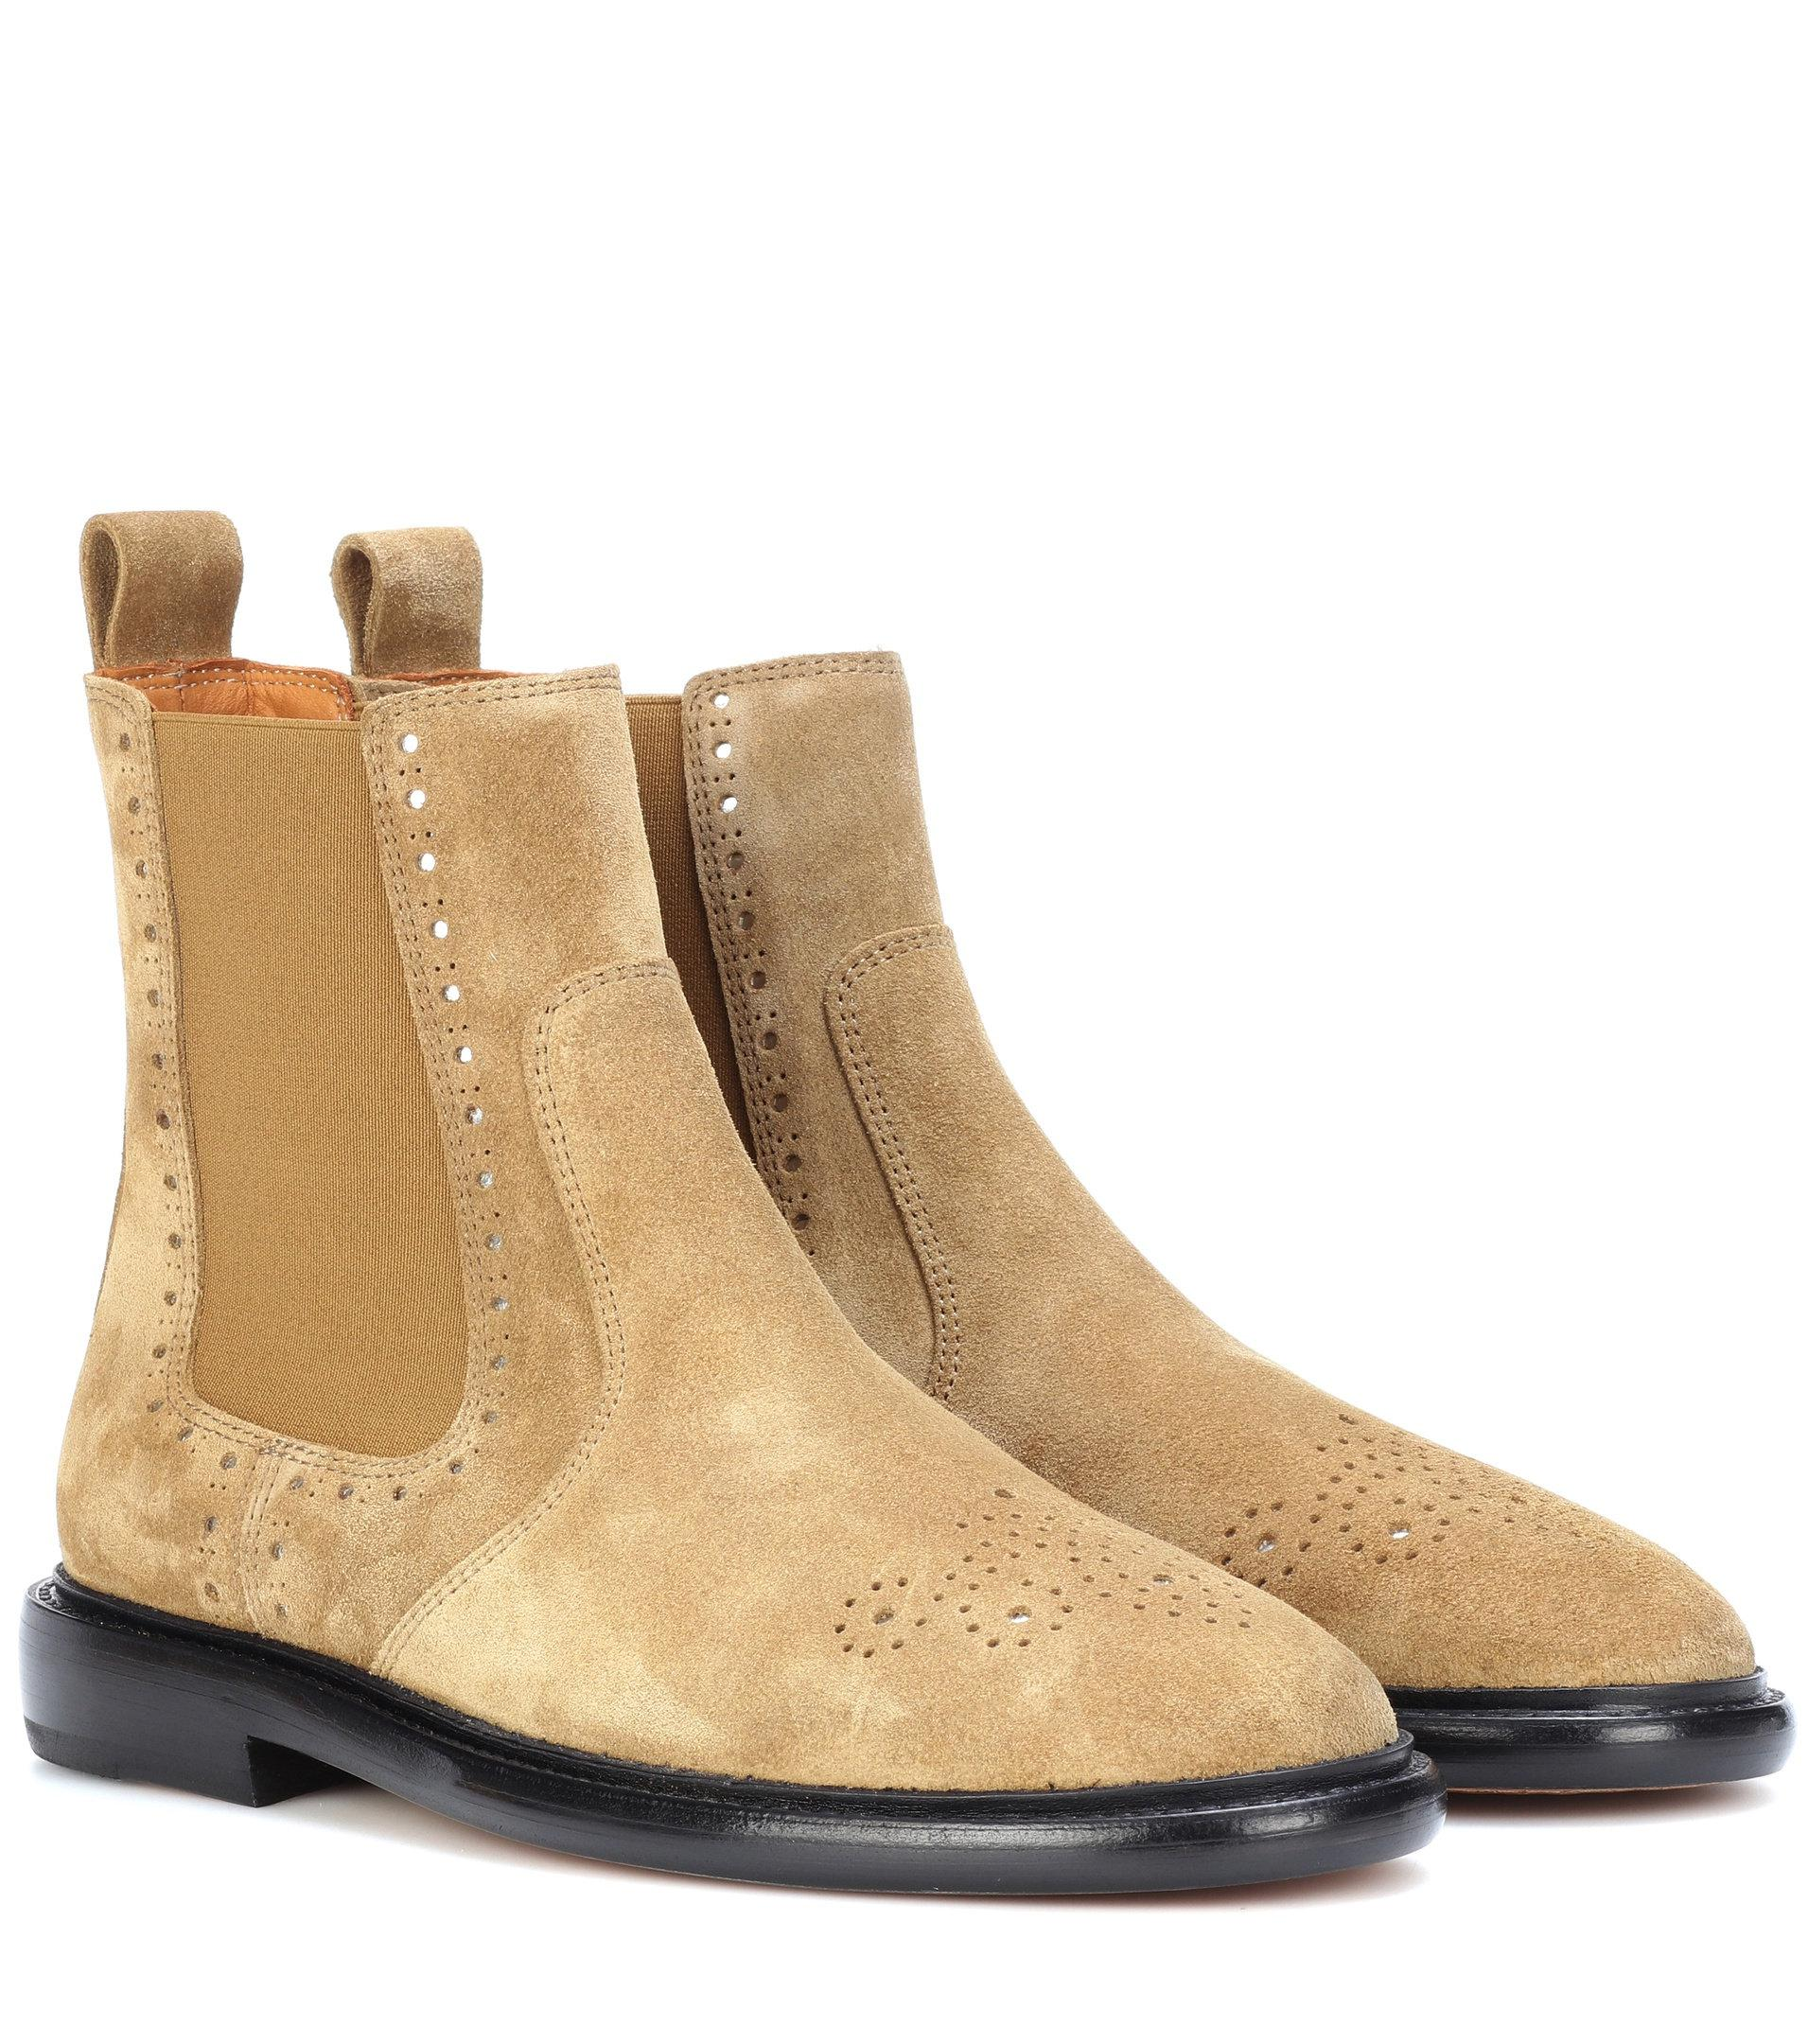 popular cheap online Isabel Marant Chelaya leather Chelsea boots sale new styles cheapest price cheap online outlet recommend cheap get to buy 7L7aGpnFB